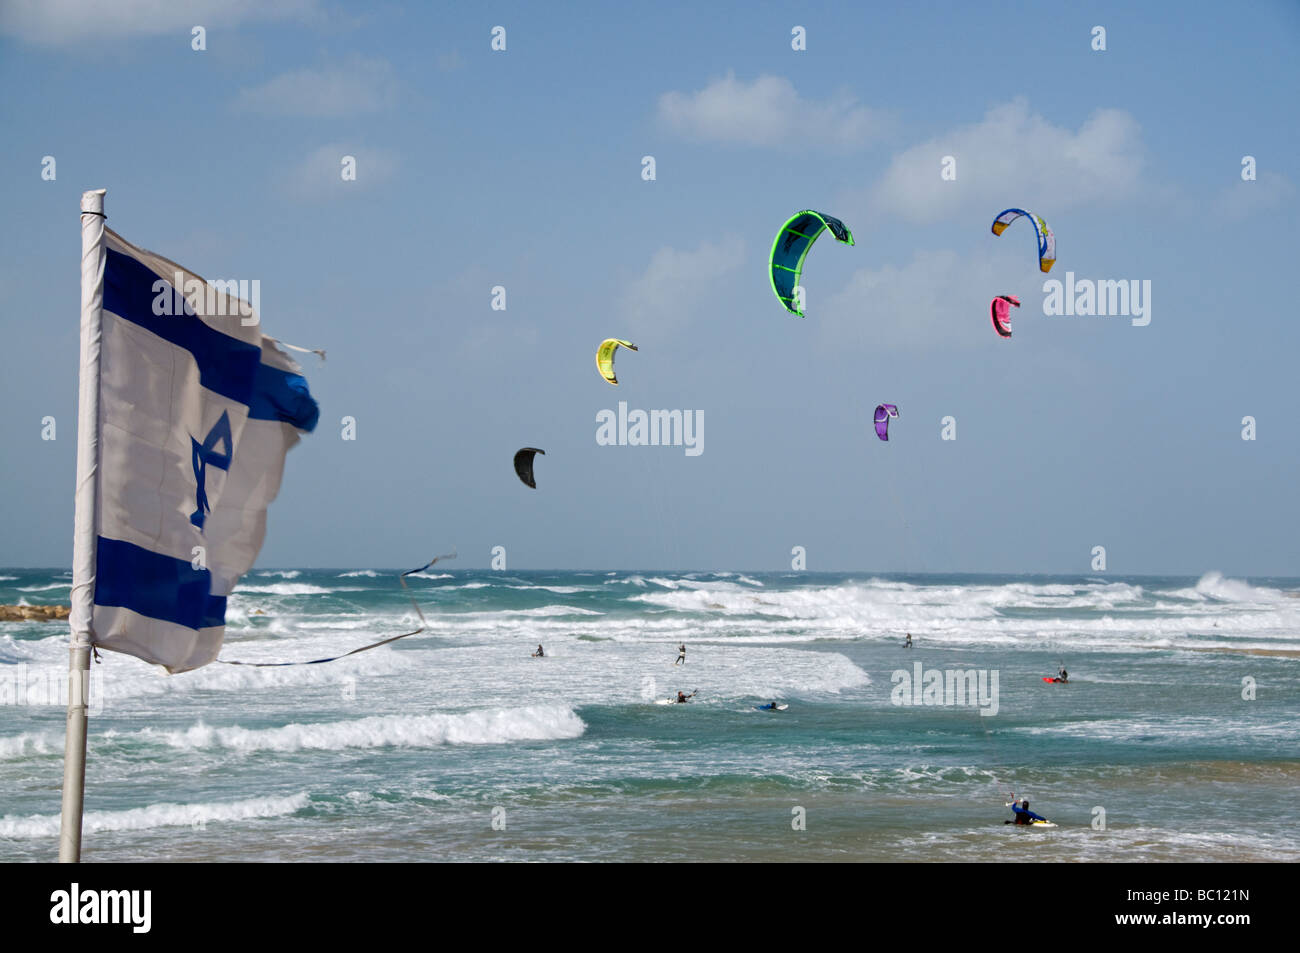 Kite surfing in Tel Aviv Beach Israel - Stock Image